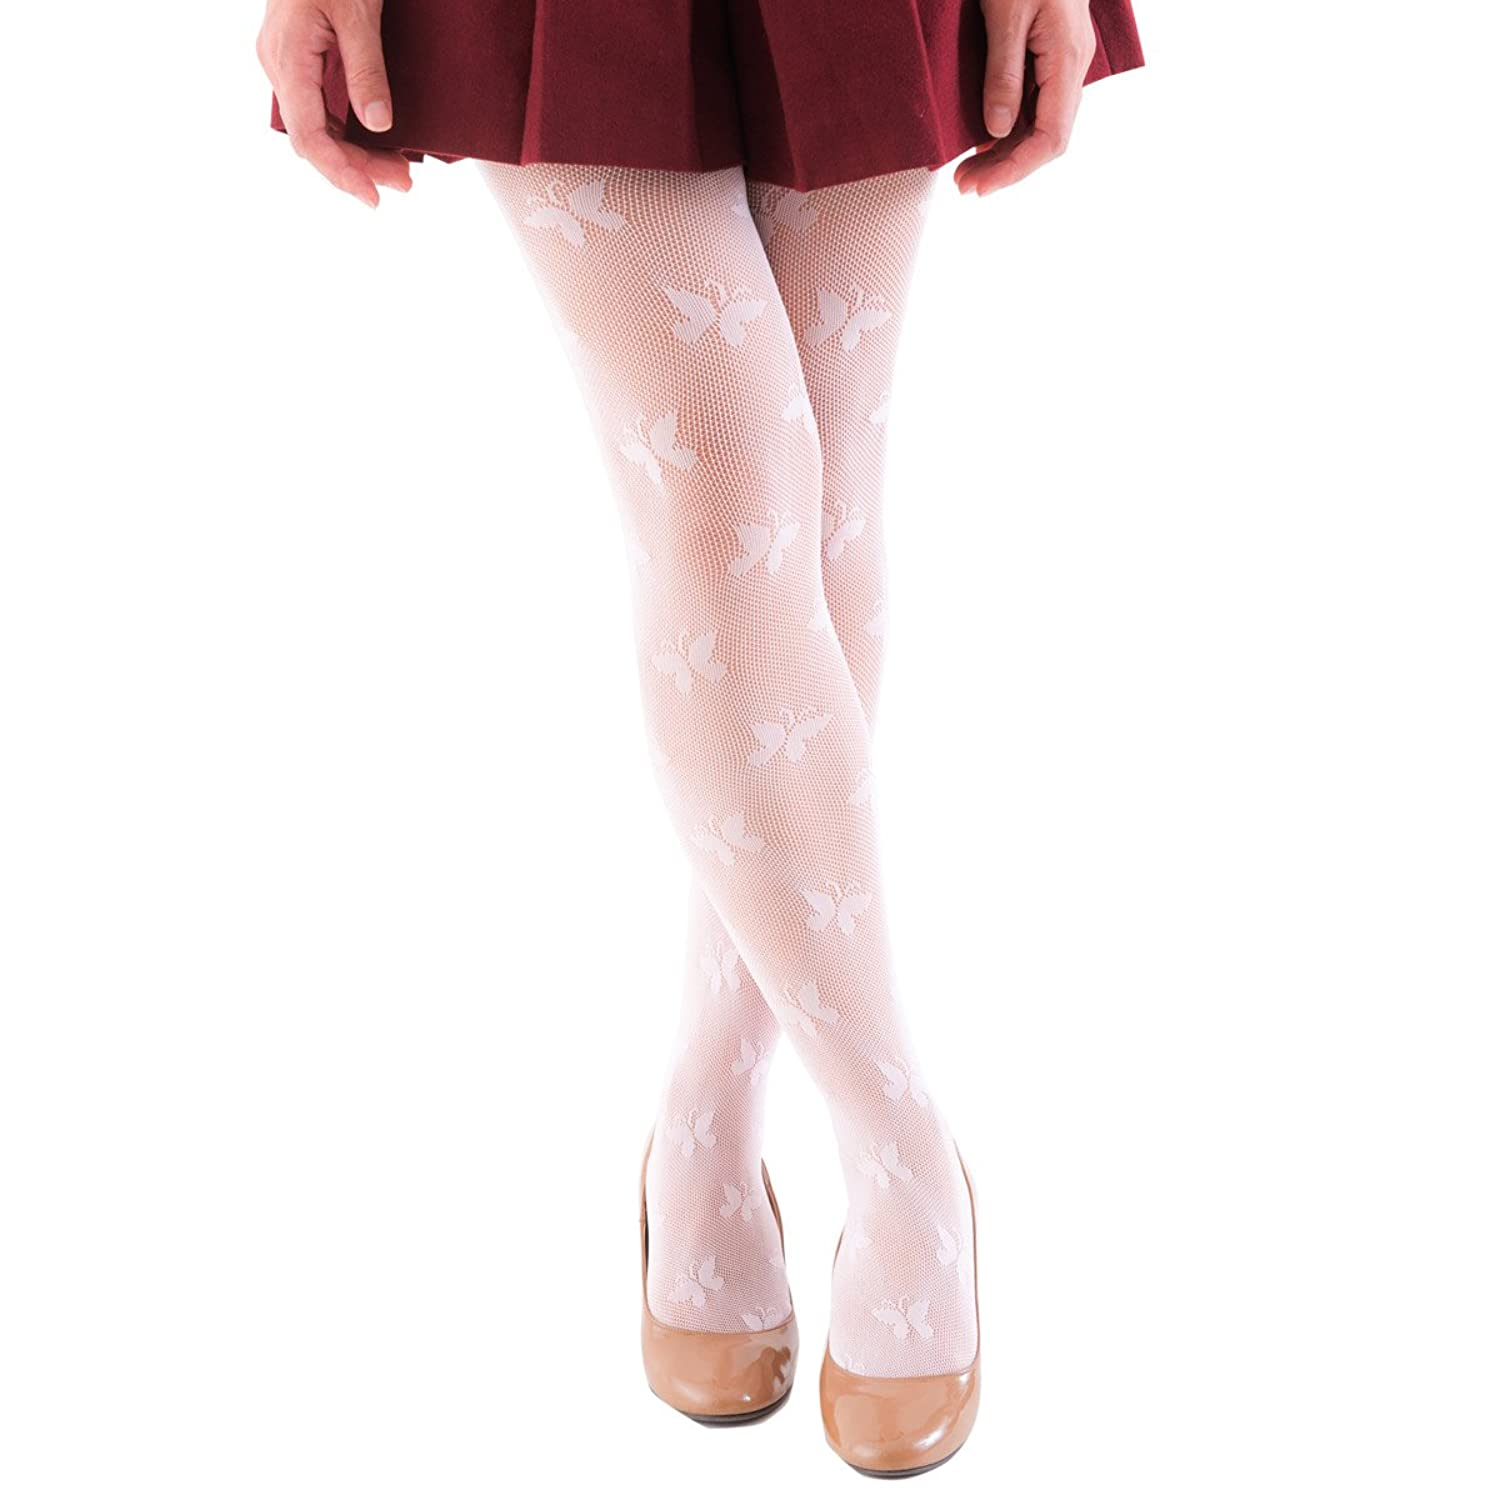 FUN fun Lace fishnet tights(Butterfly pattern) for Girls White/Black/Pink/Beige